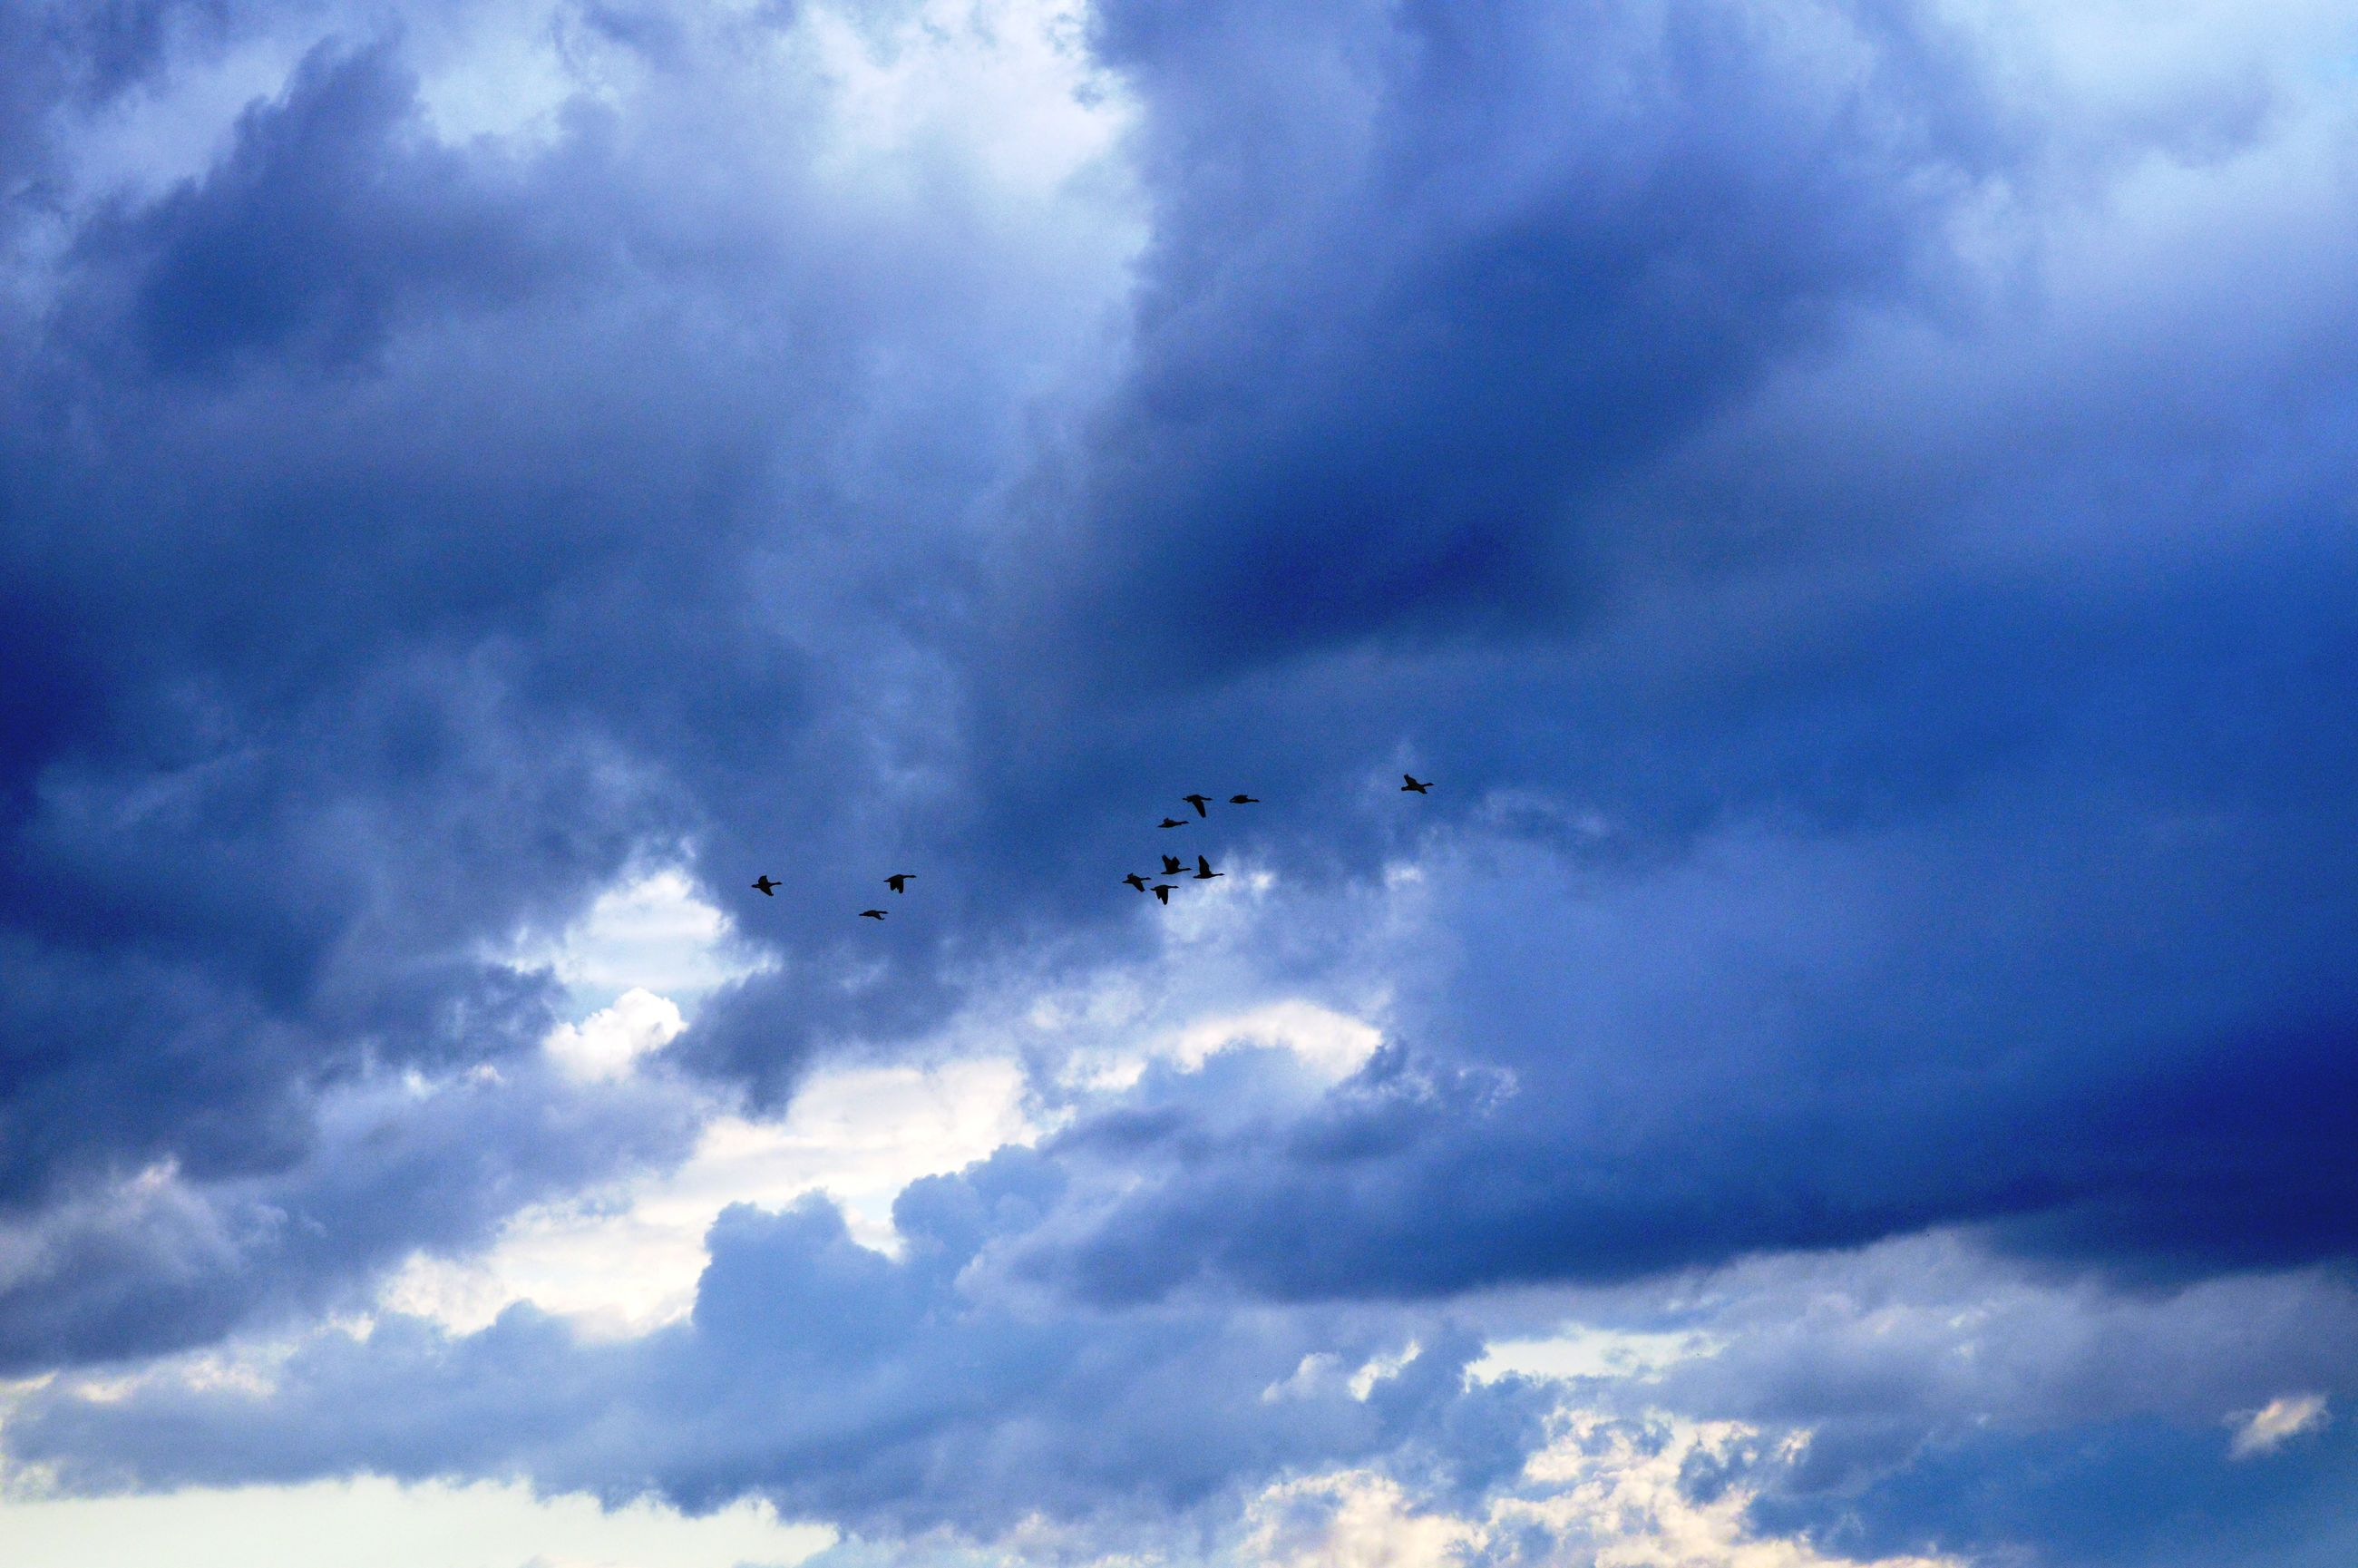 flying, sky, low angle view, cloud - sky, mid-air, cloudy, transportation, air vehicle, airplane, mode of transport, nature, cloud, on the move, beauty in nature, bird, animal themes, blue, motion, silhouette